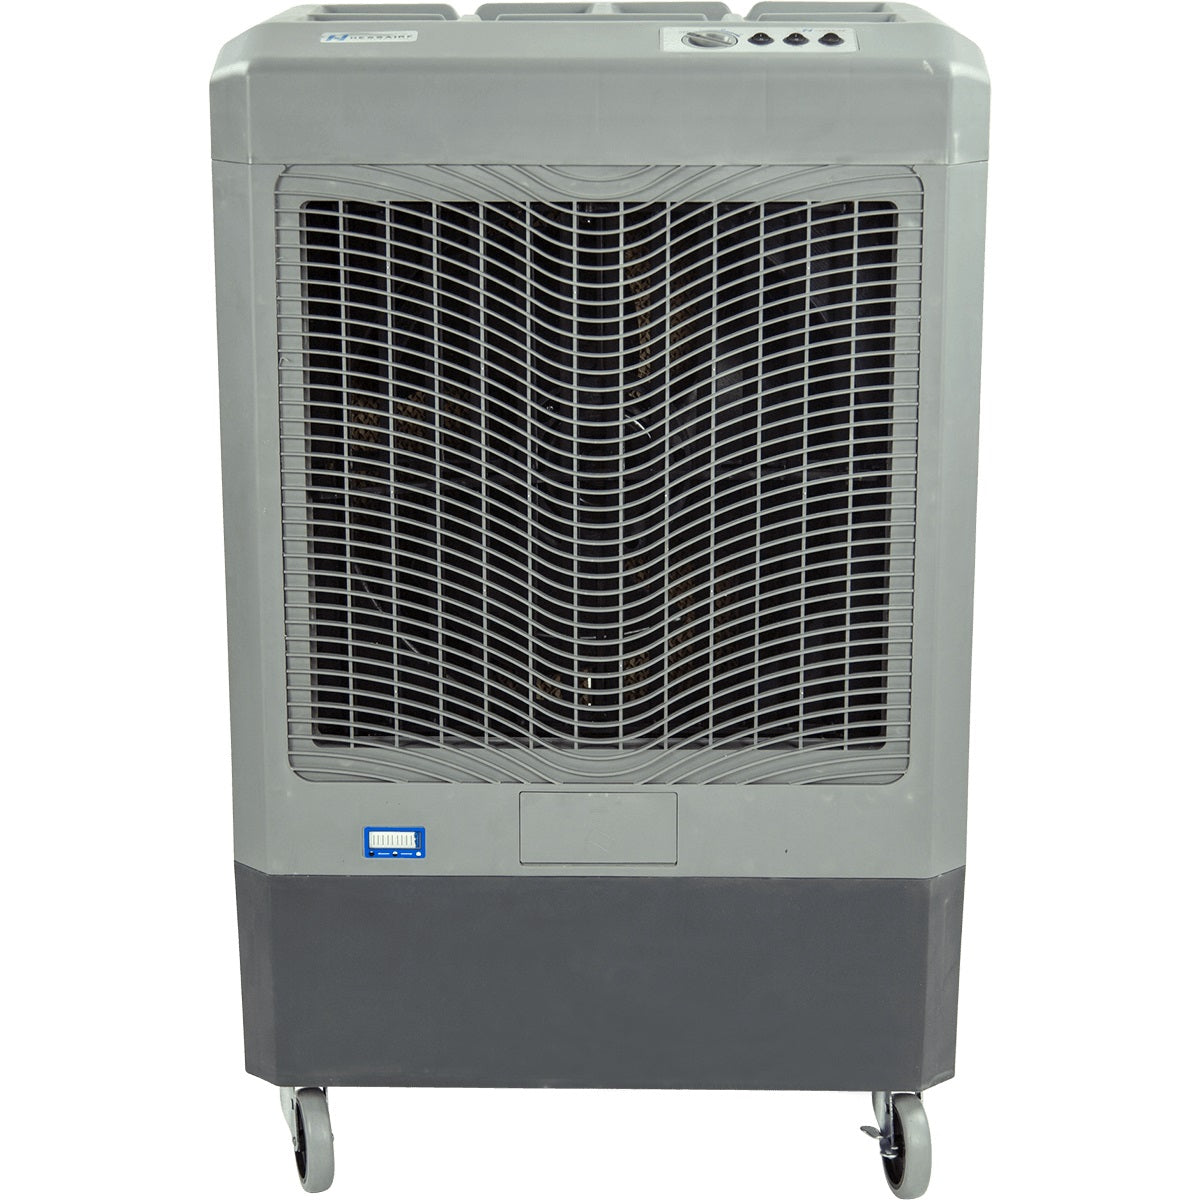 auto-repair-shop-evaporative-cooling-fans.jpg